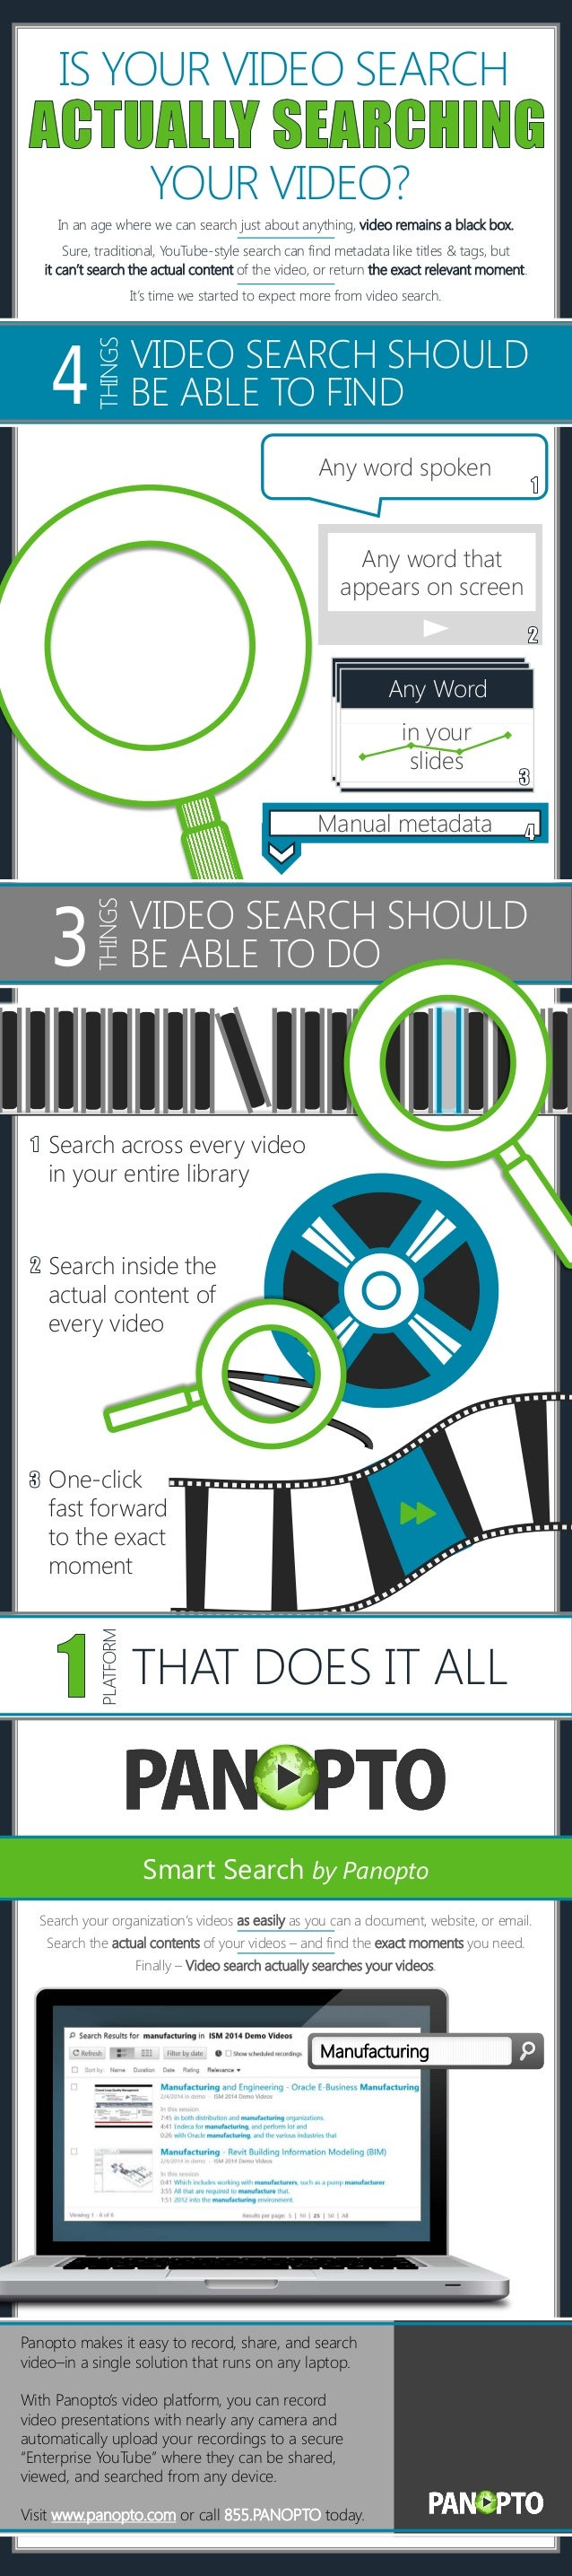 Panopto makes it easy to record, share, and search video–in a single solution that runs on any laptop. With Panopto's vide...